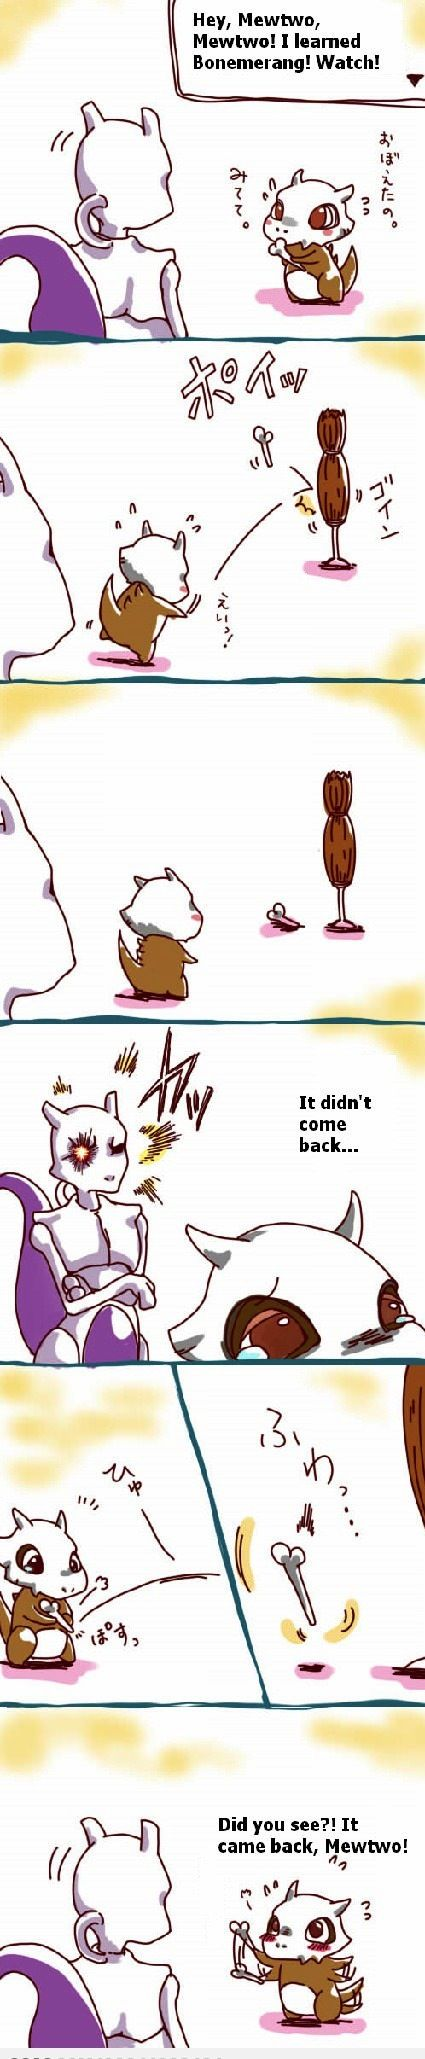 Good guy Mewtwo is so cute!! :3